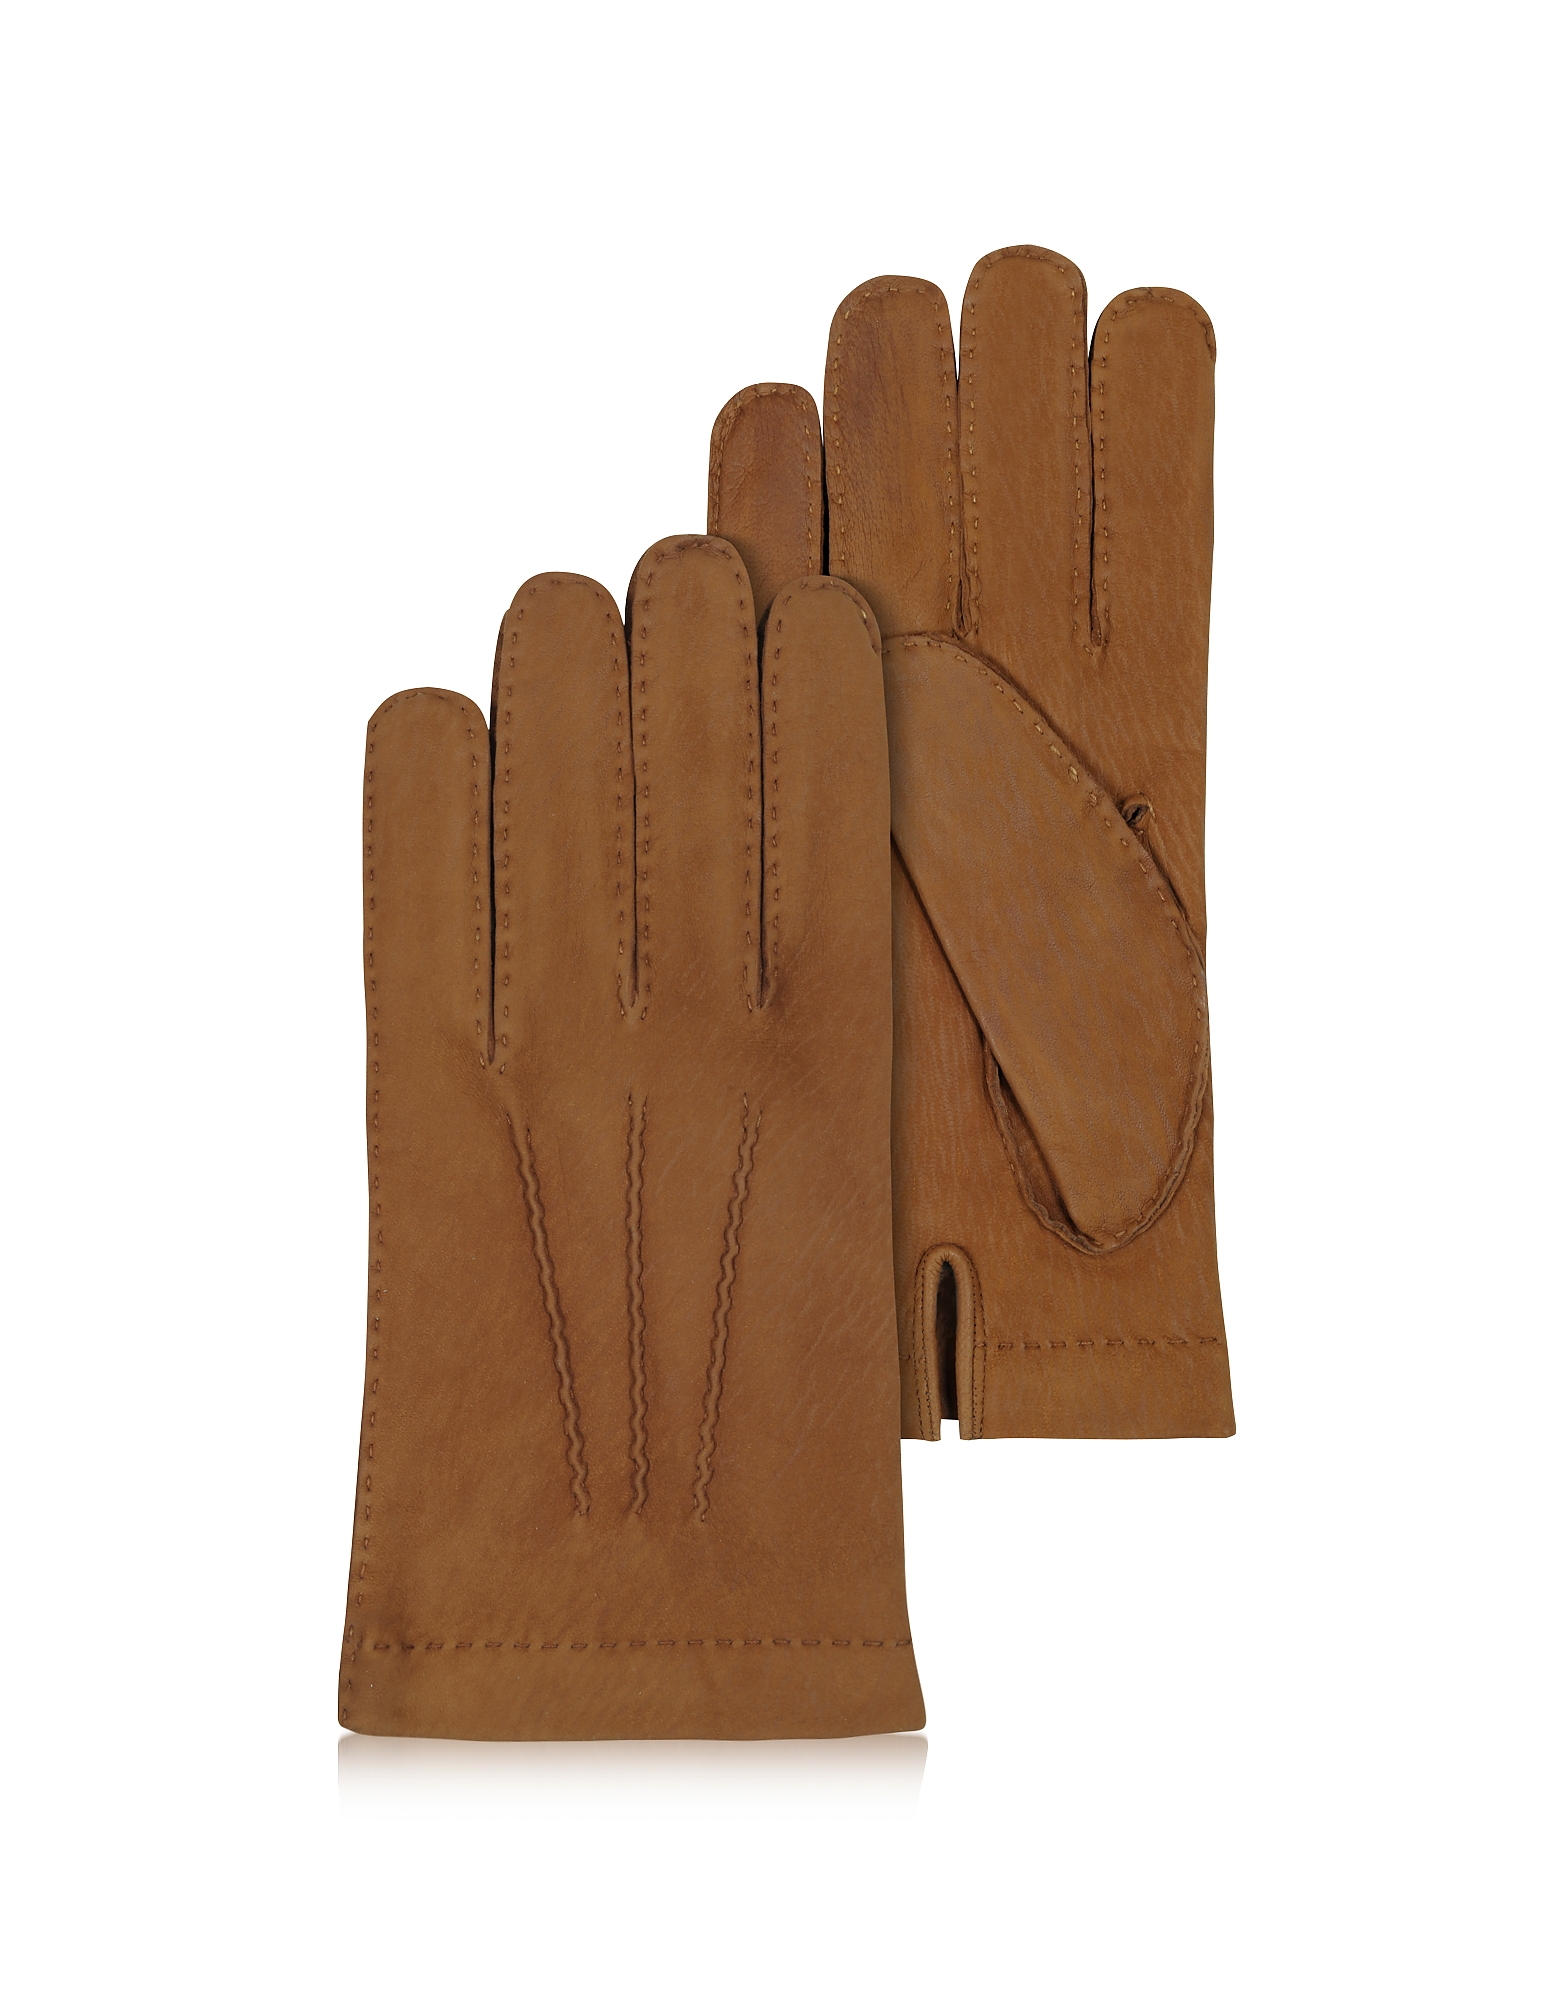 Forzieri Men's Gloves, Men's Cashmere Lined Brown Italian Calf Leather Gloves